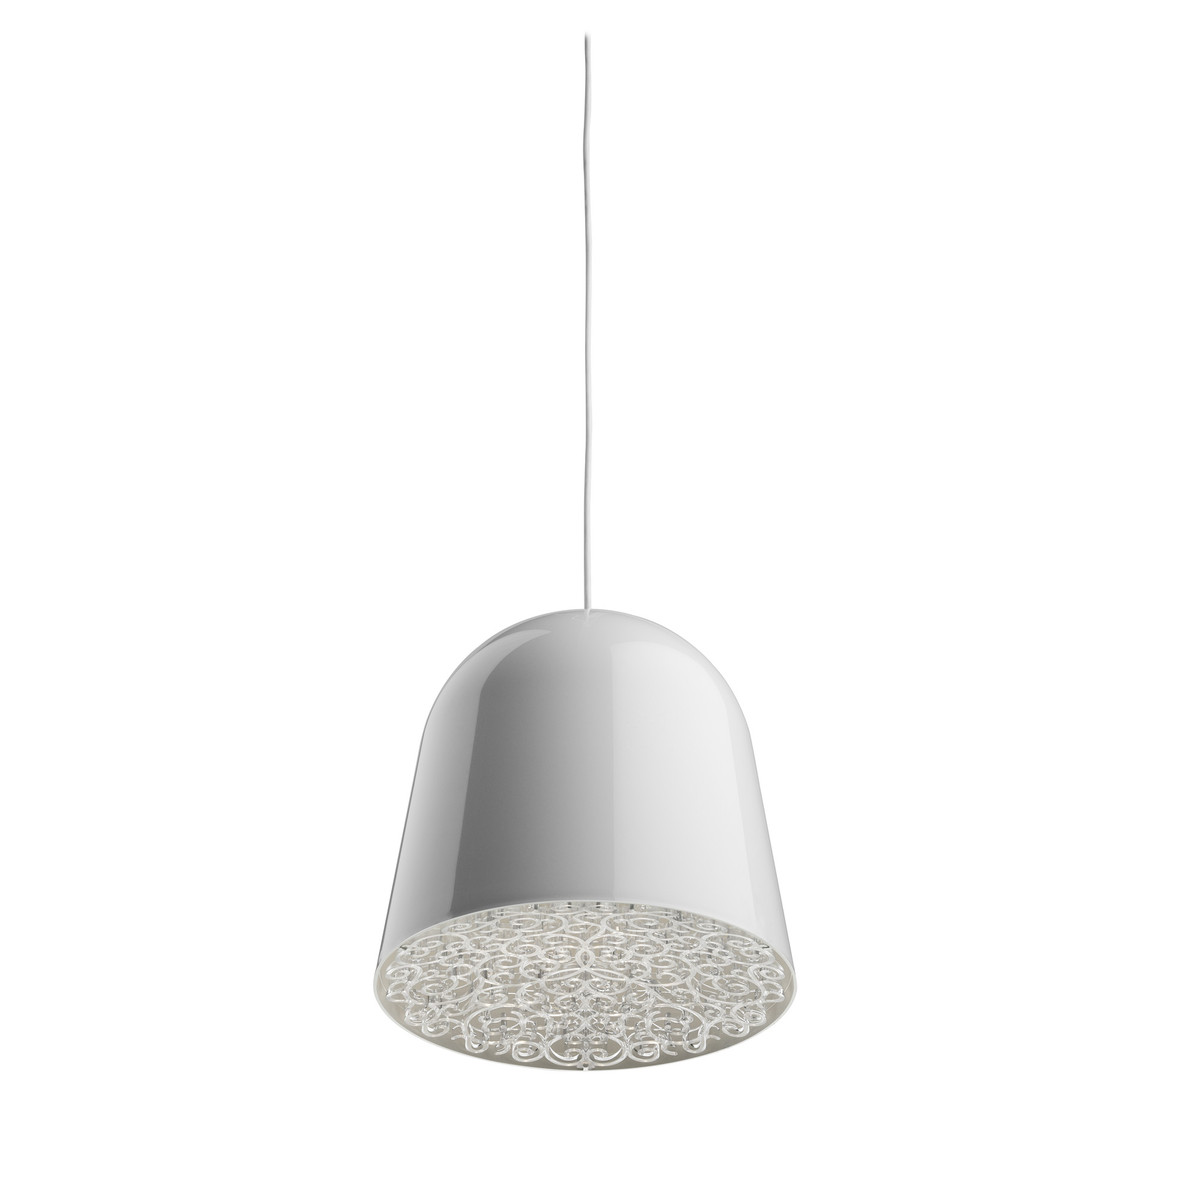 Mini Can Can Track Pendant lamp ø9,4cm GU4 20w White/Transparent